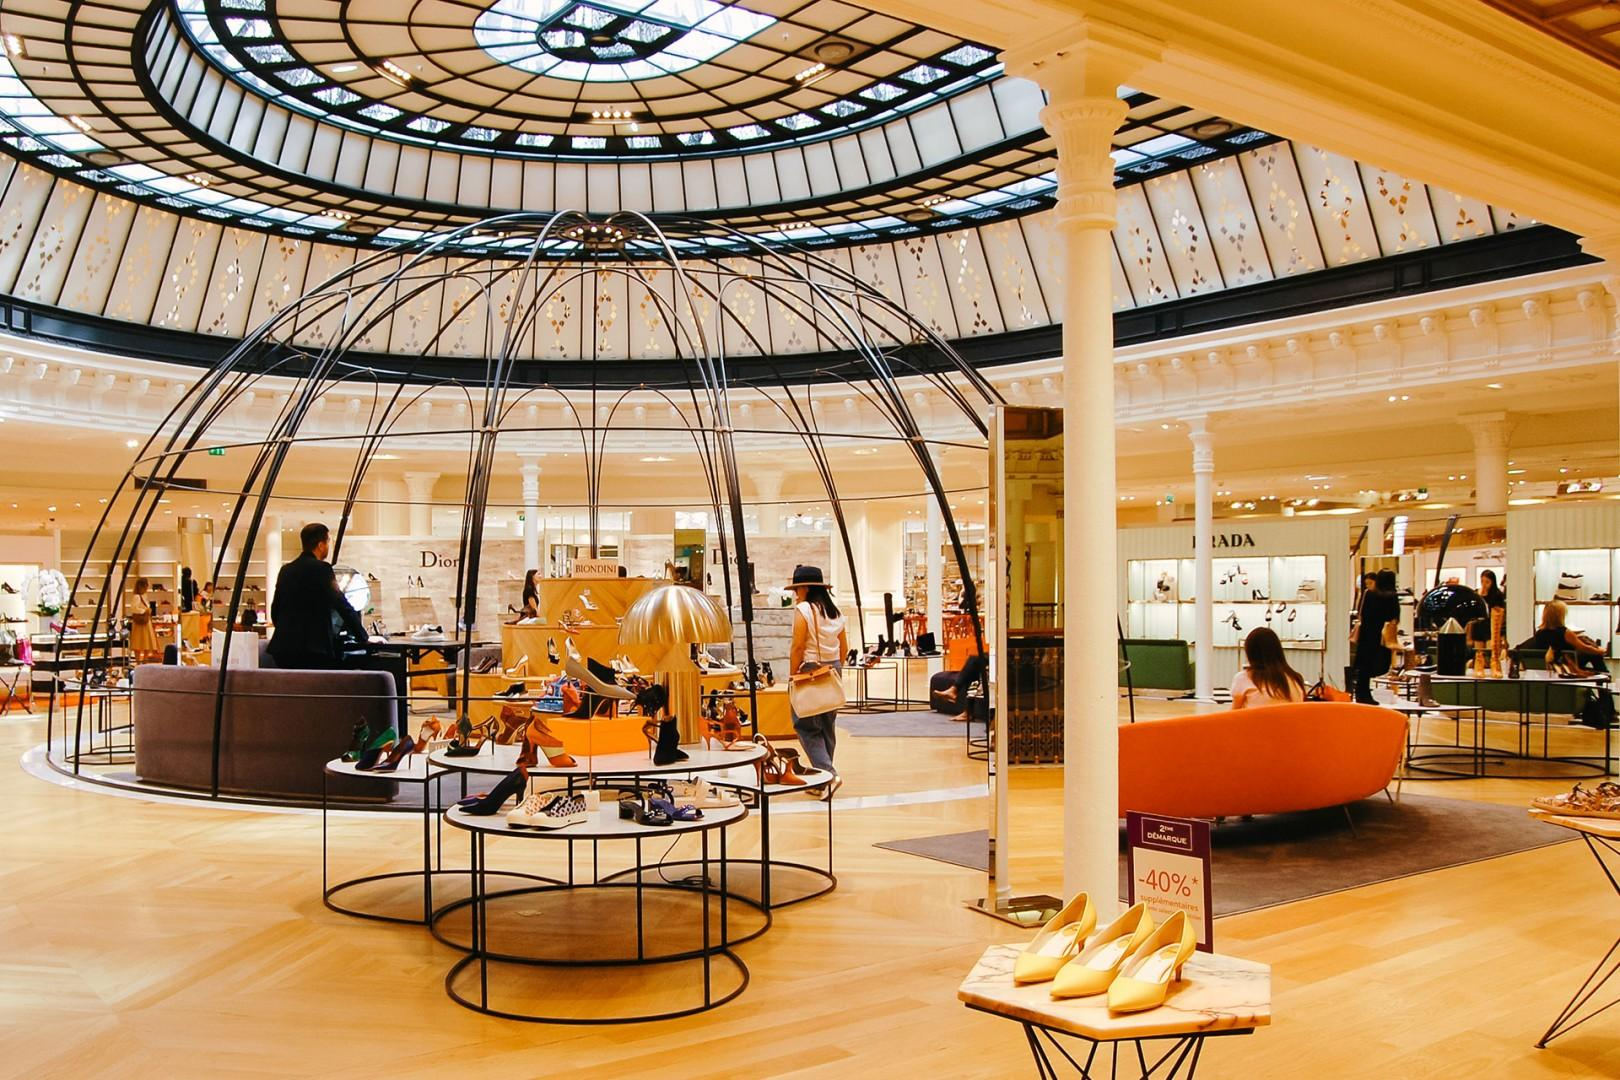 Shop with style in the stunning Le Bon Marché.